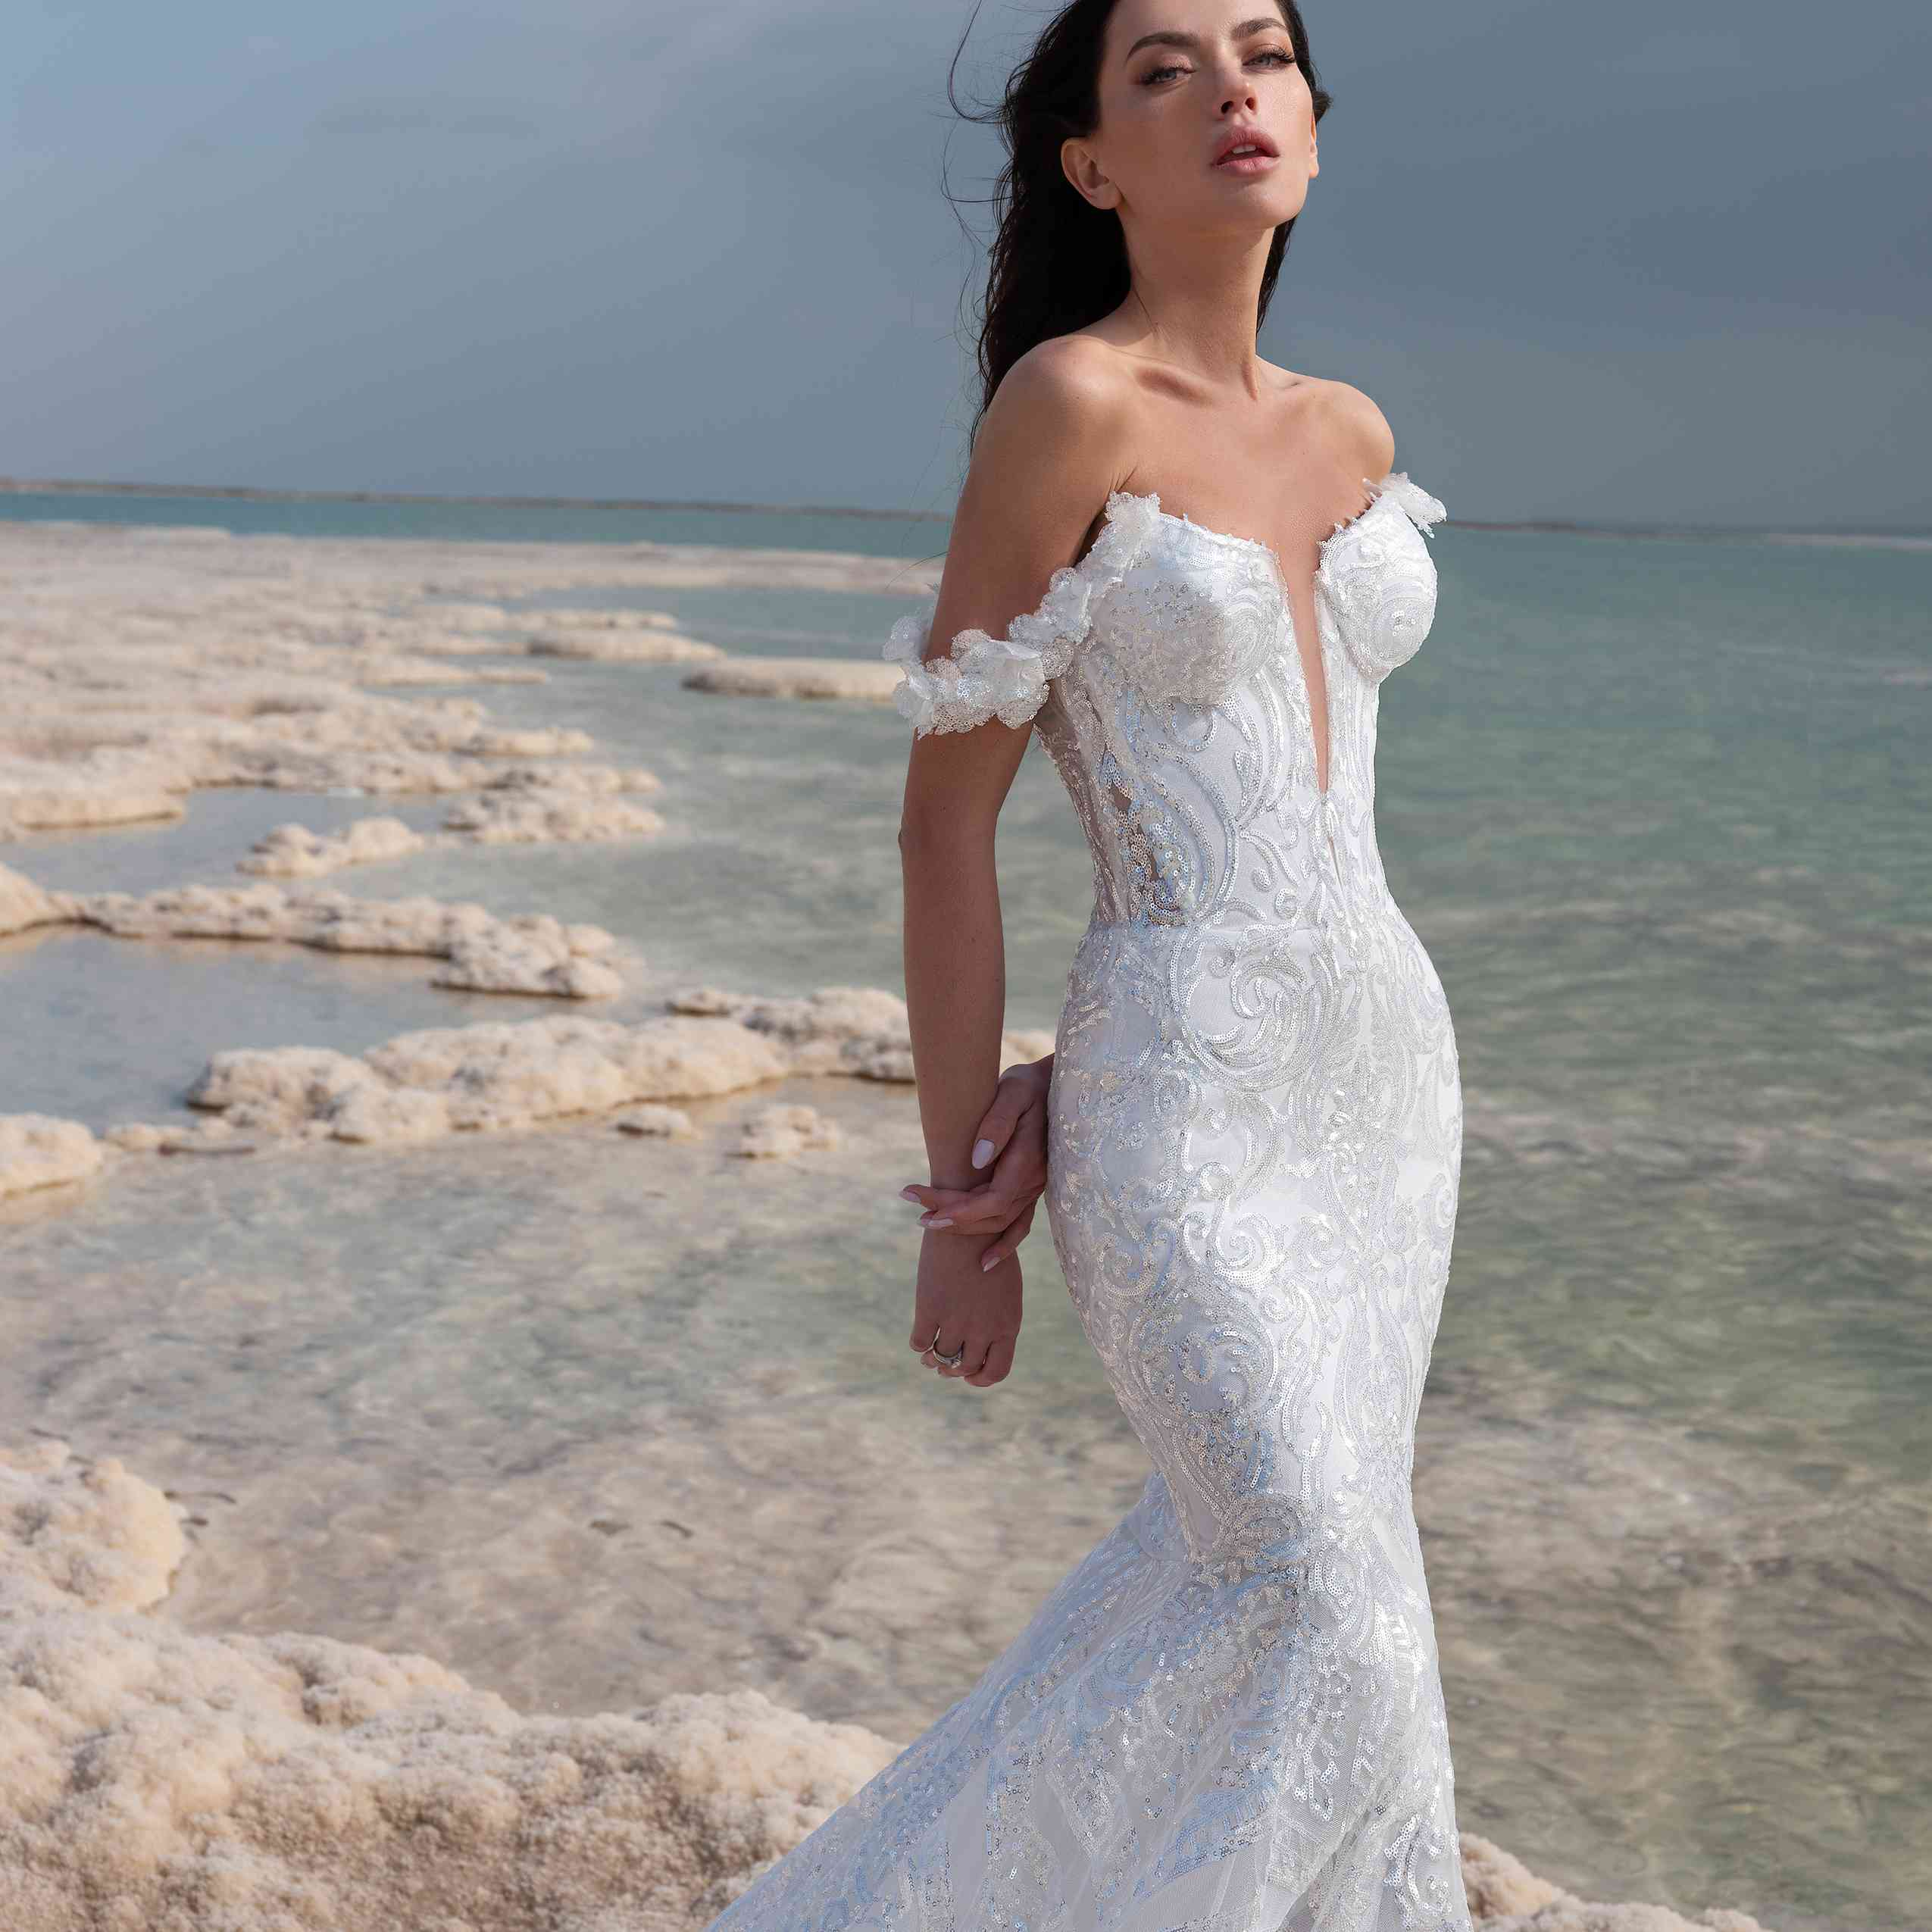 Pnina Tornai Bridal Spring 2020,Traditional Wedding Dresses For Mens In Sri Lanka